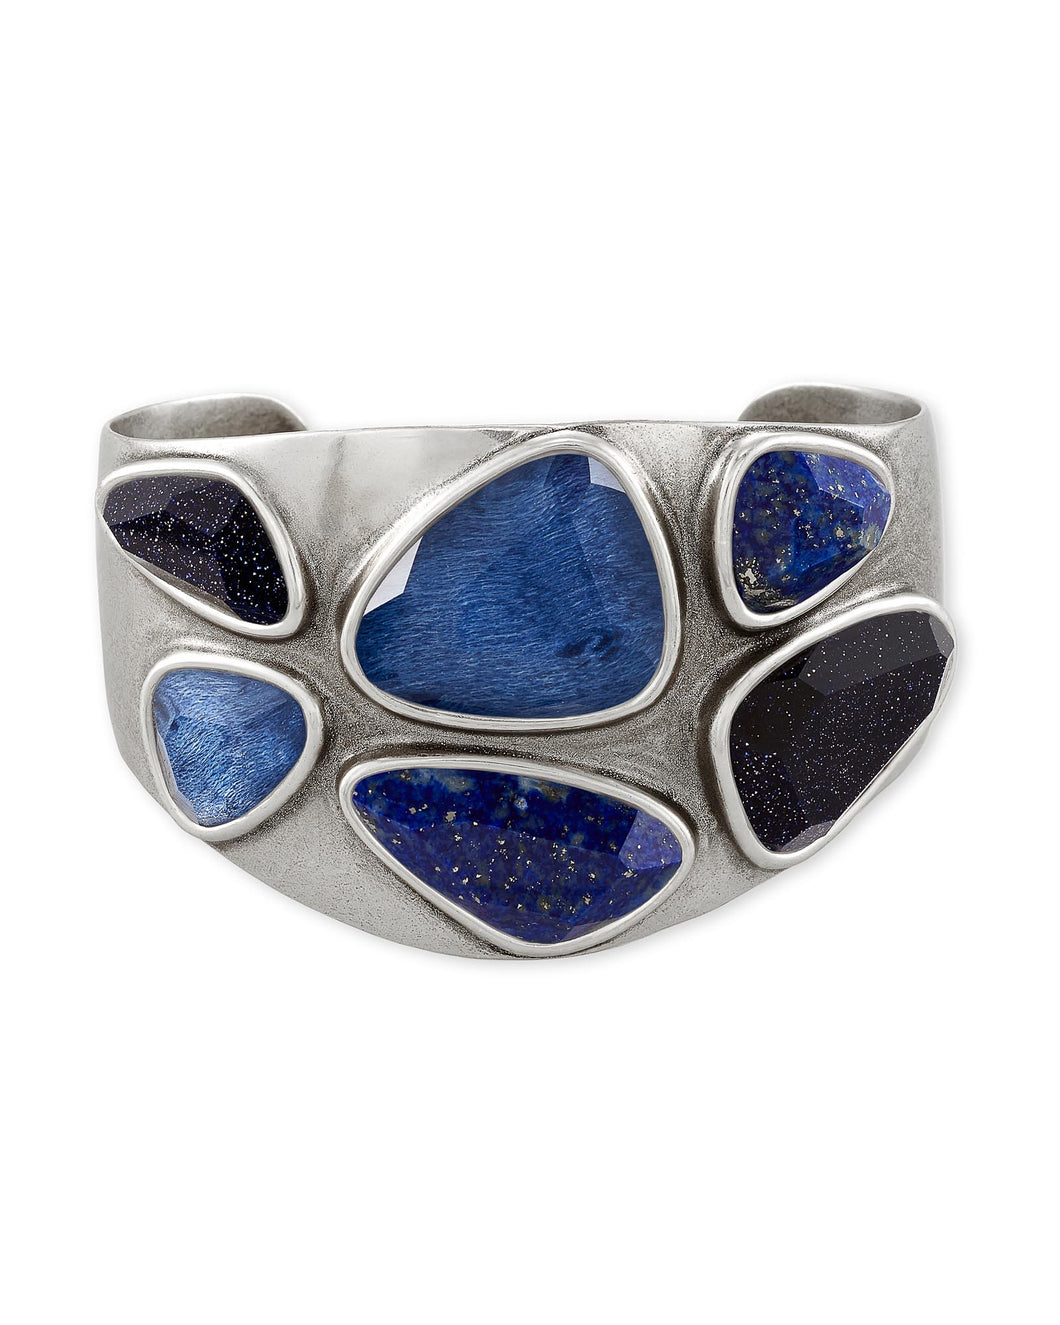 Margot Vintage Silver Statement Cuff Bracelet in Navy Mix